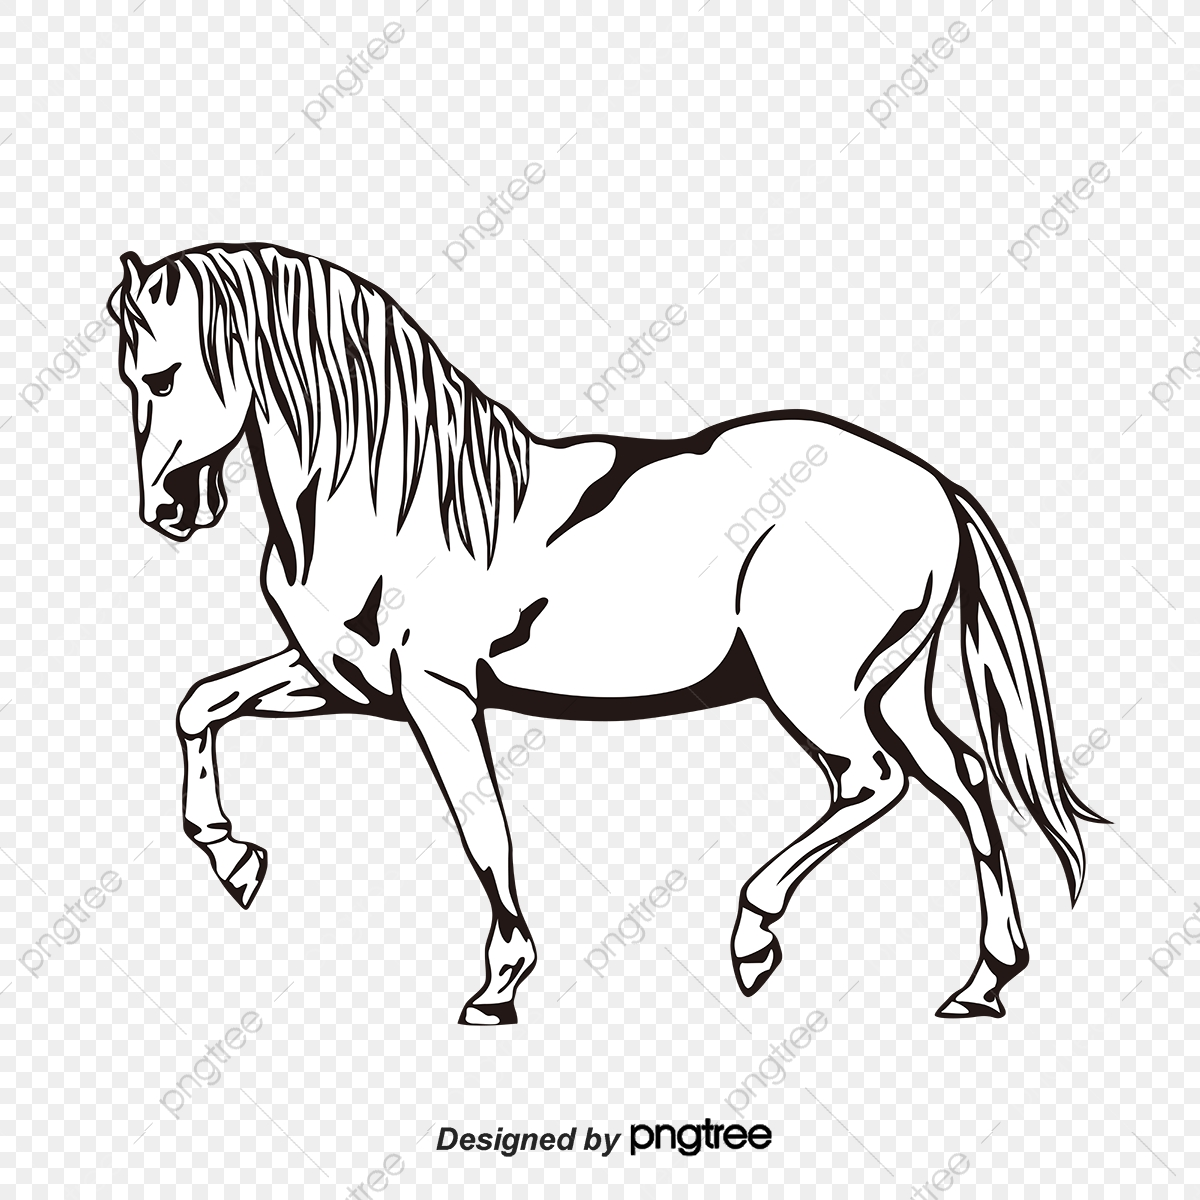 Silhouette Of Black And White Horse Horse Clipart Black And White Silhouette Animal Png And Vector With Transparent Background For Free Download